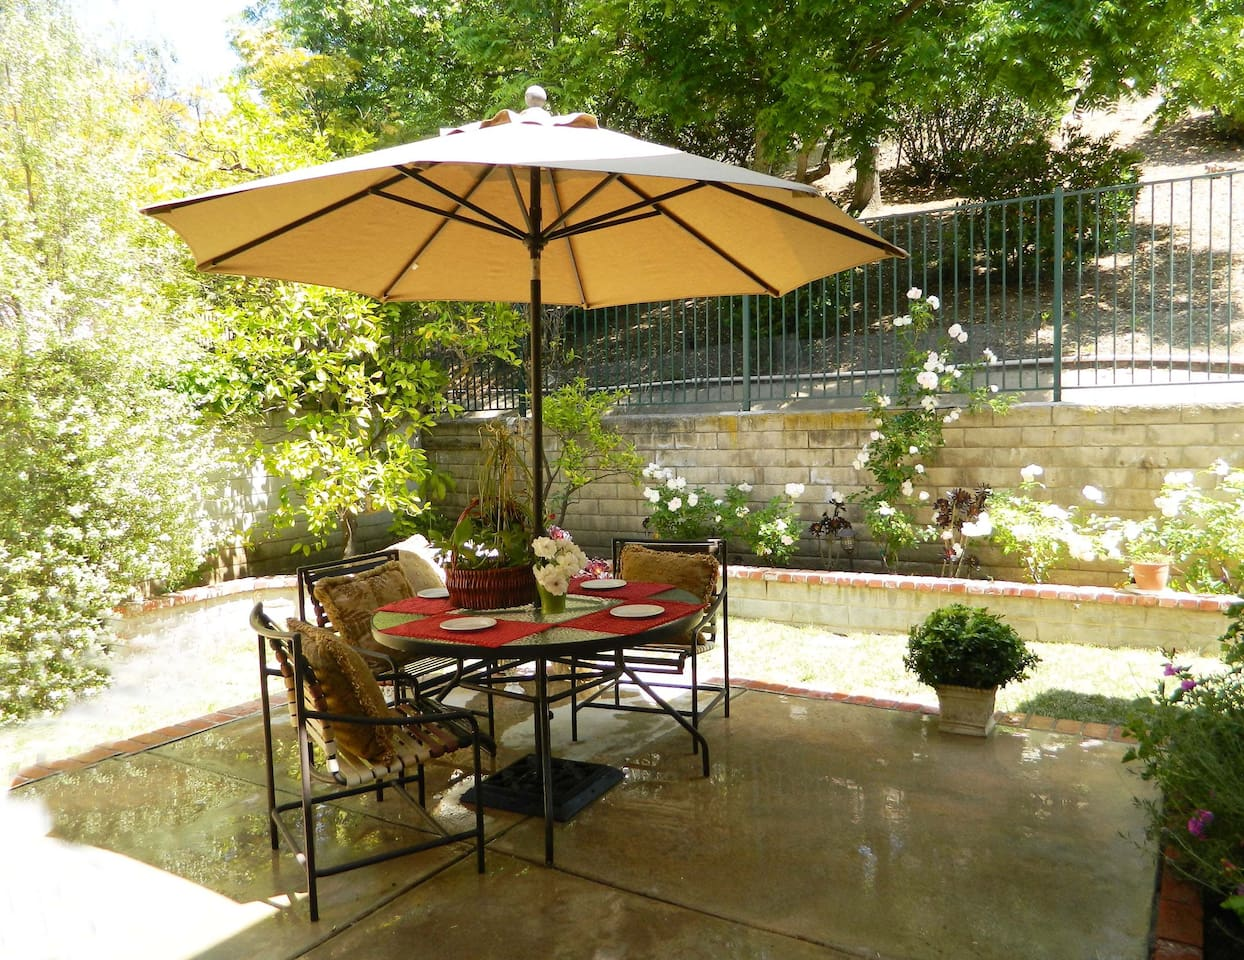 Enjoy a cup of coffee or tea on the patio